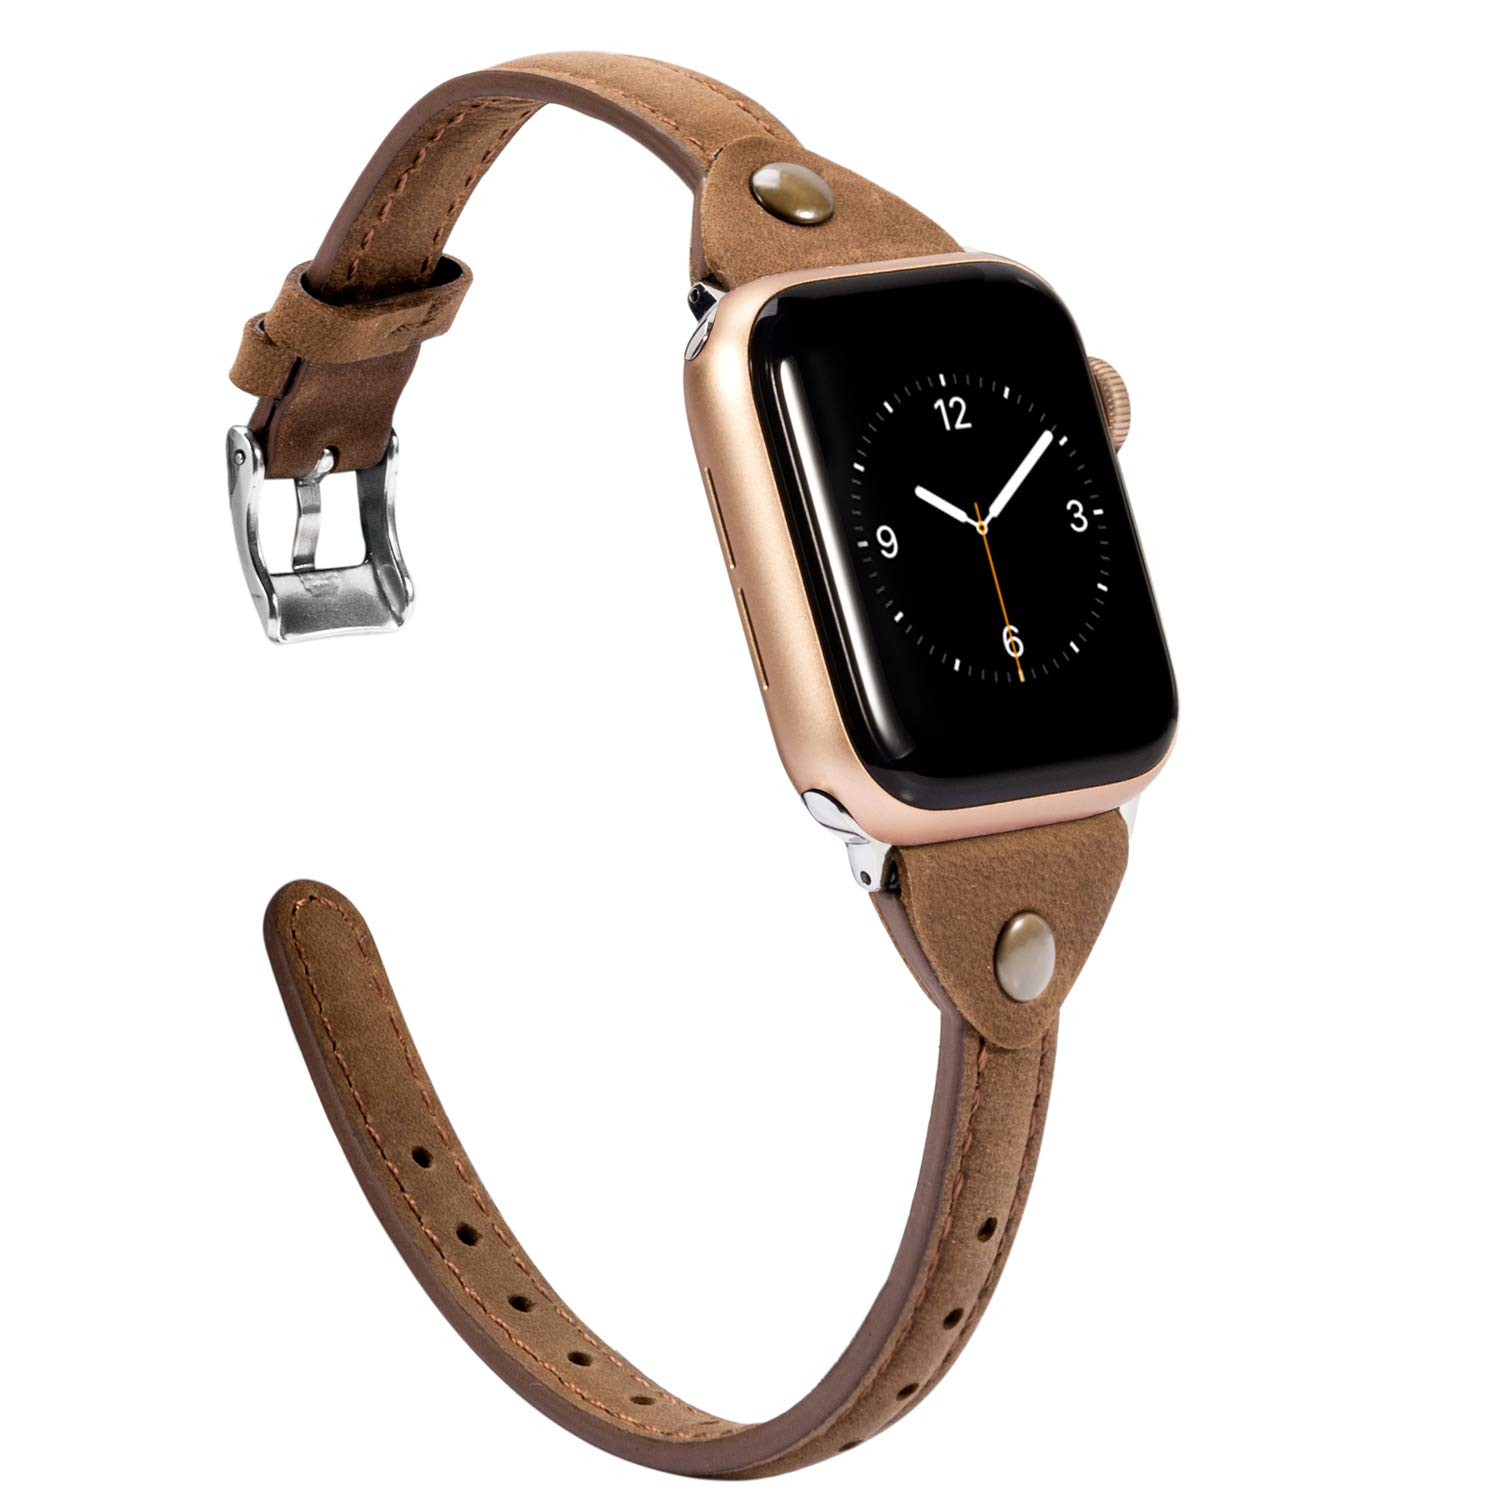 Wearlizer Scrub Deep Brown Leather Compatible with Apple Watch Slim Leather Band 38mm 40mm iWatch Womens Mens Strap Wristband Leisure Unique Bracelet (Silver Metal Clasp) Series 4 3 2 1 Sport Edition